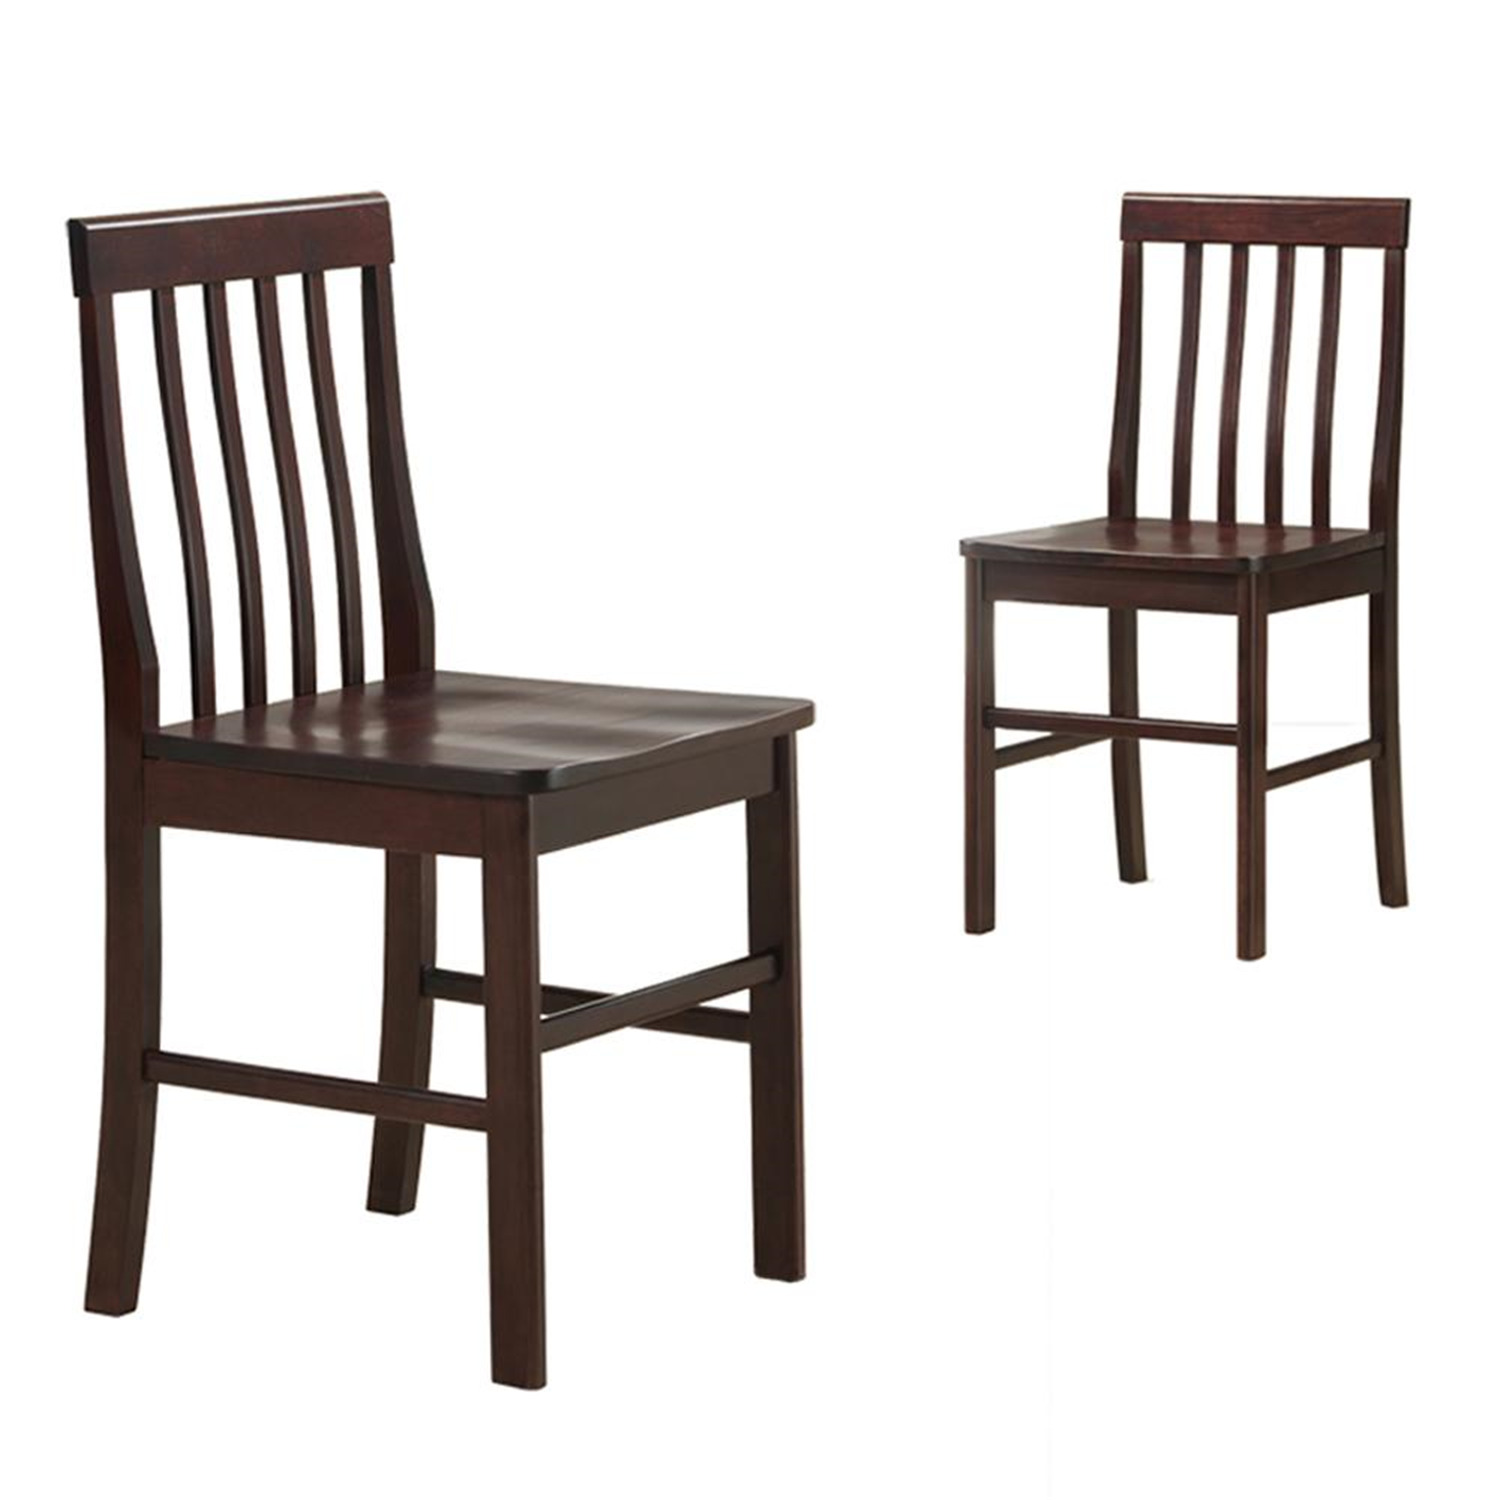 Walker edison solid wood dining chairs piece by oj